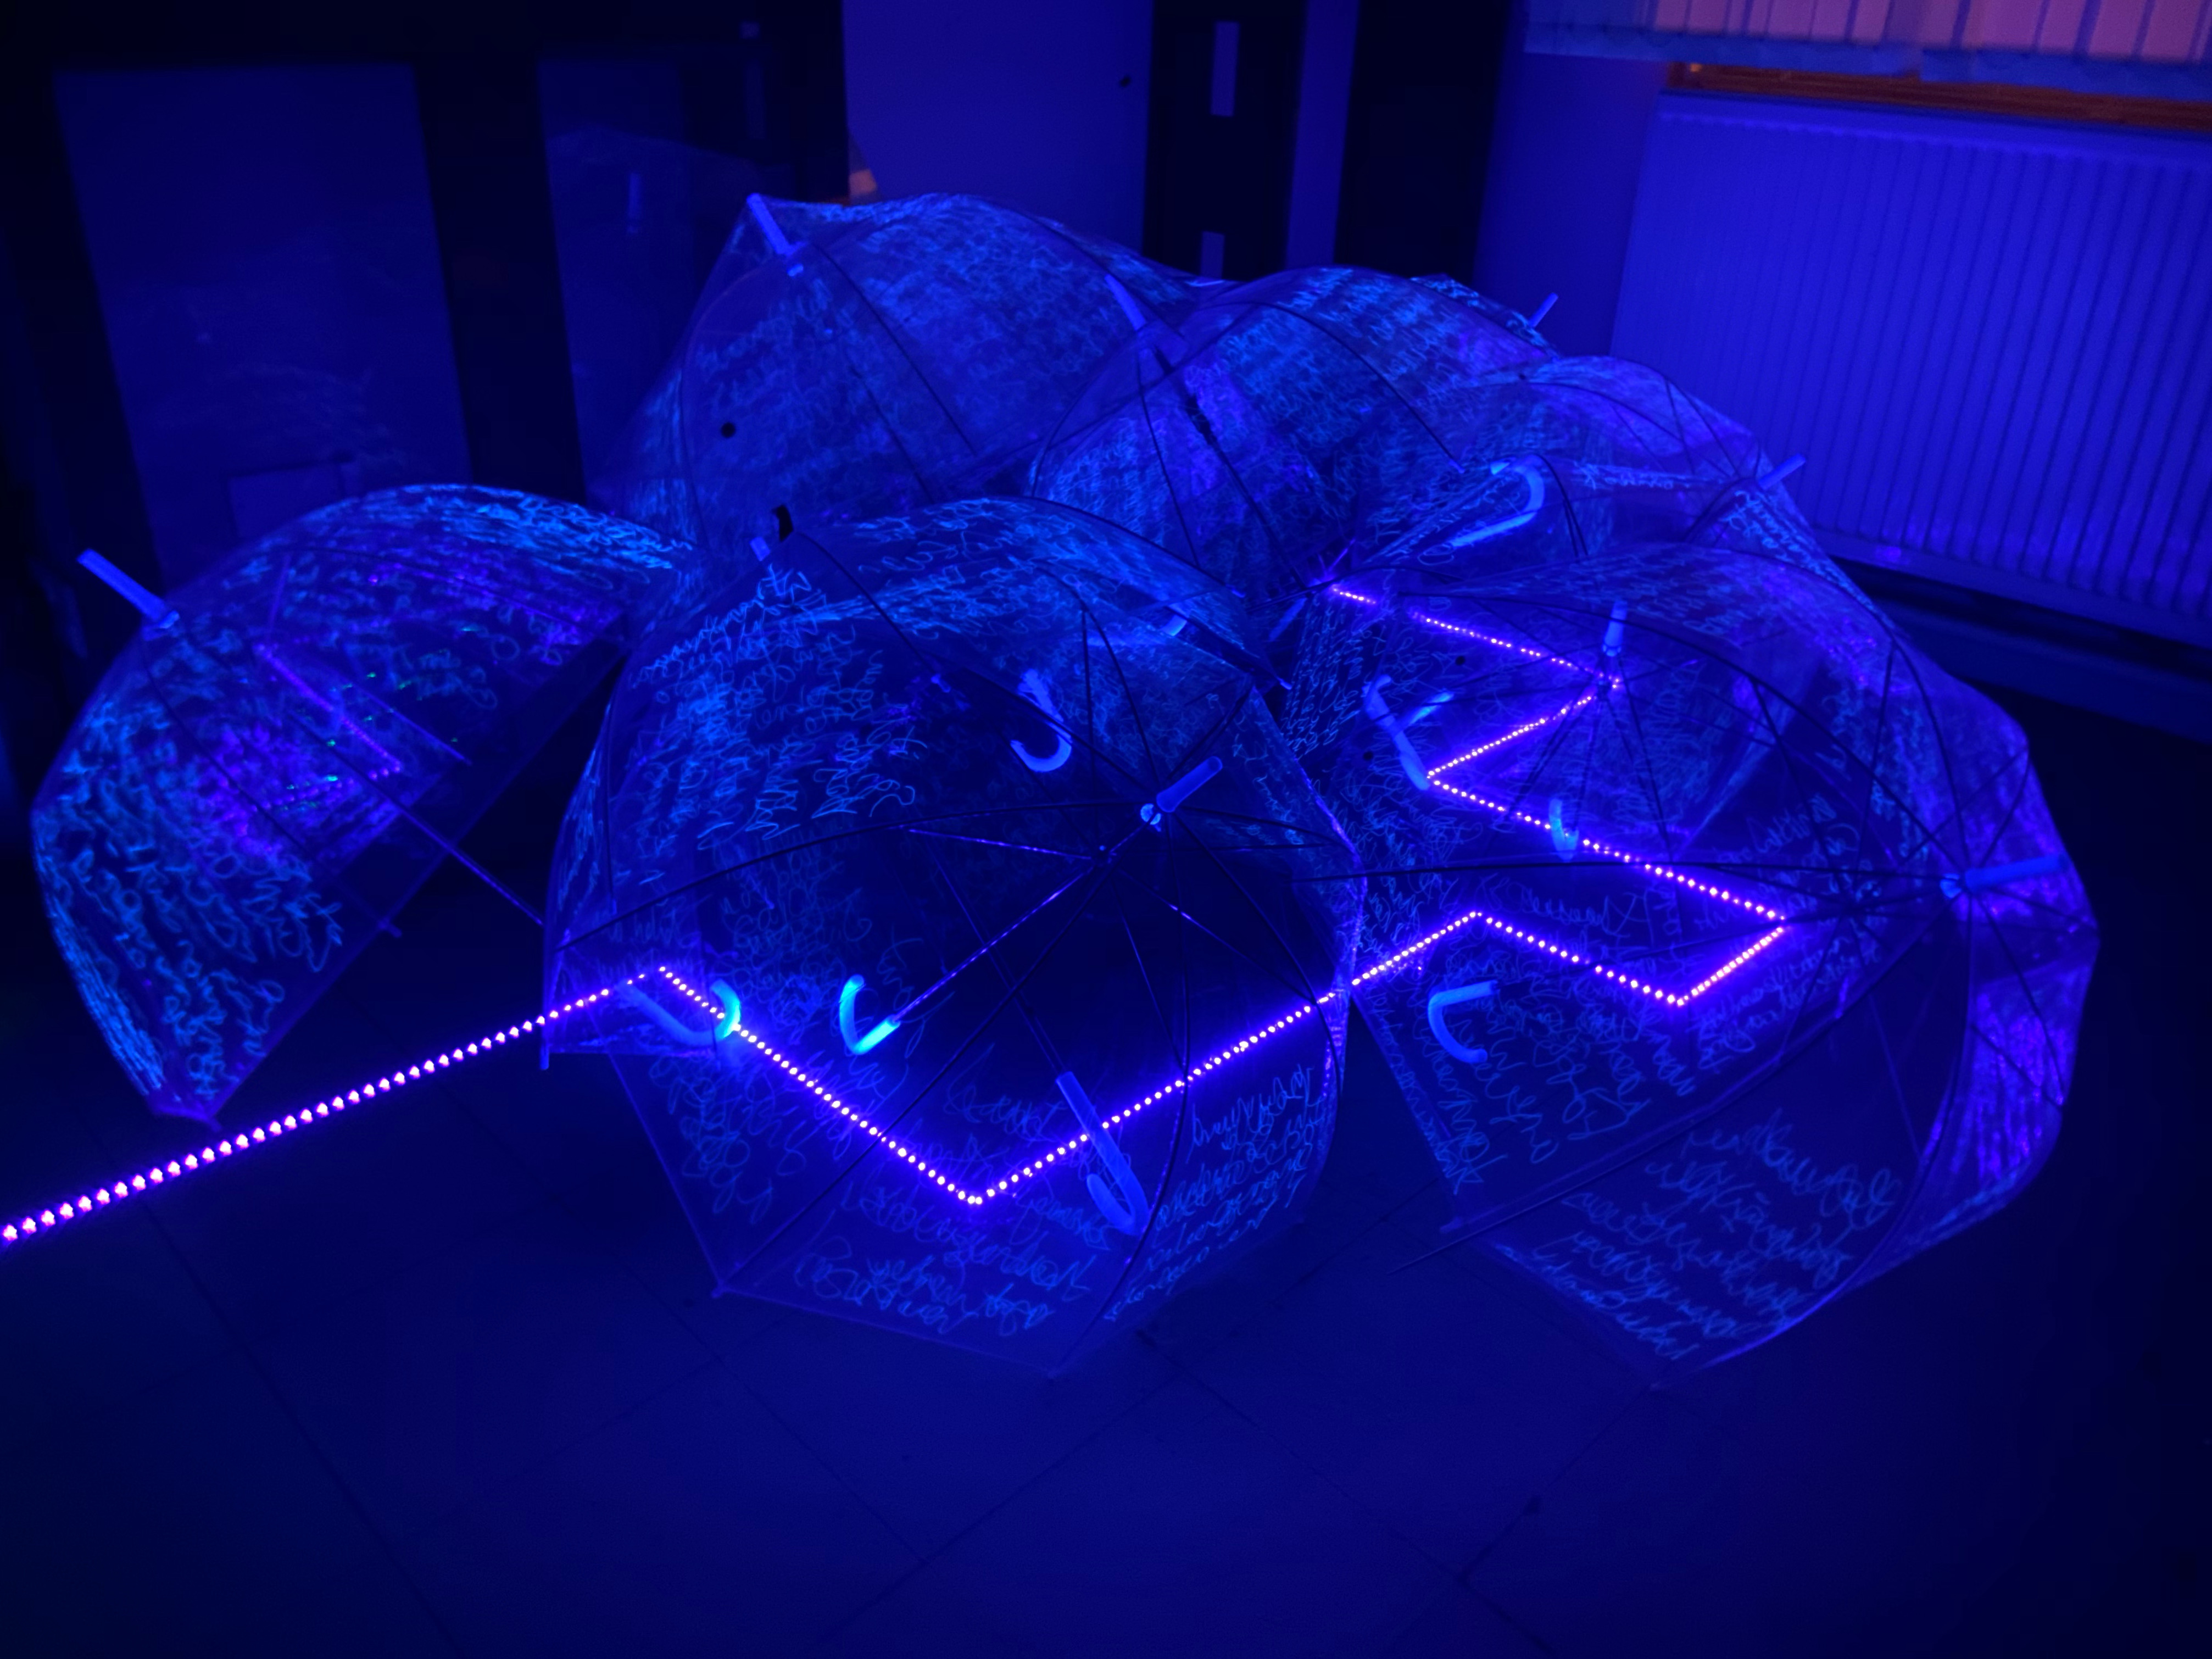 A strip of neon blue lights runs along the floor, covered by transparent plastic umbrellas with neon scrawls on them